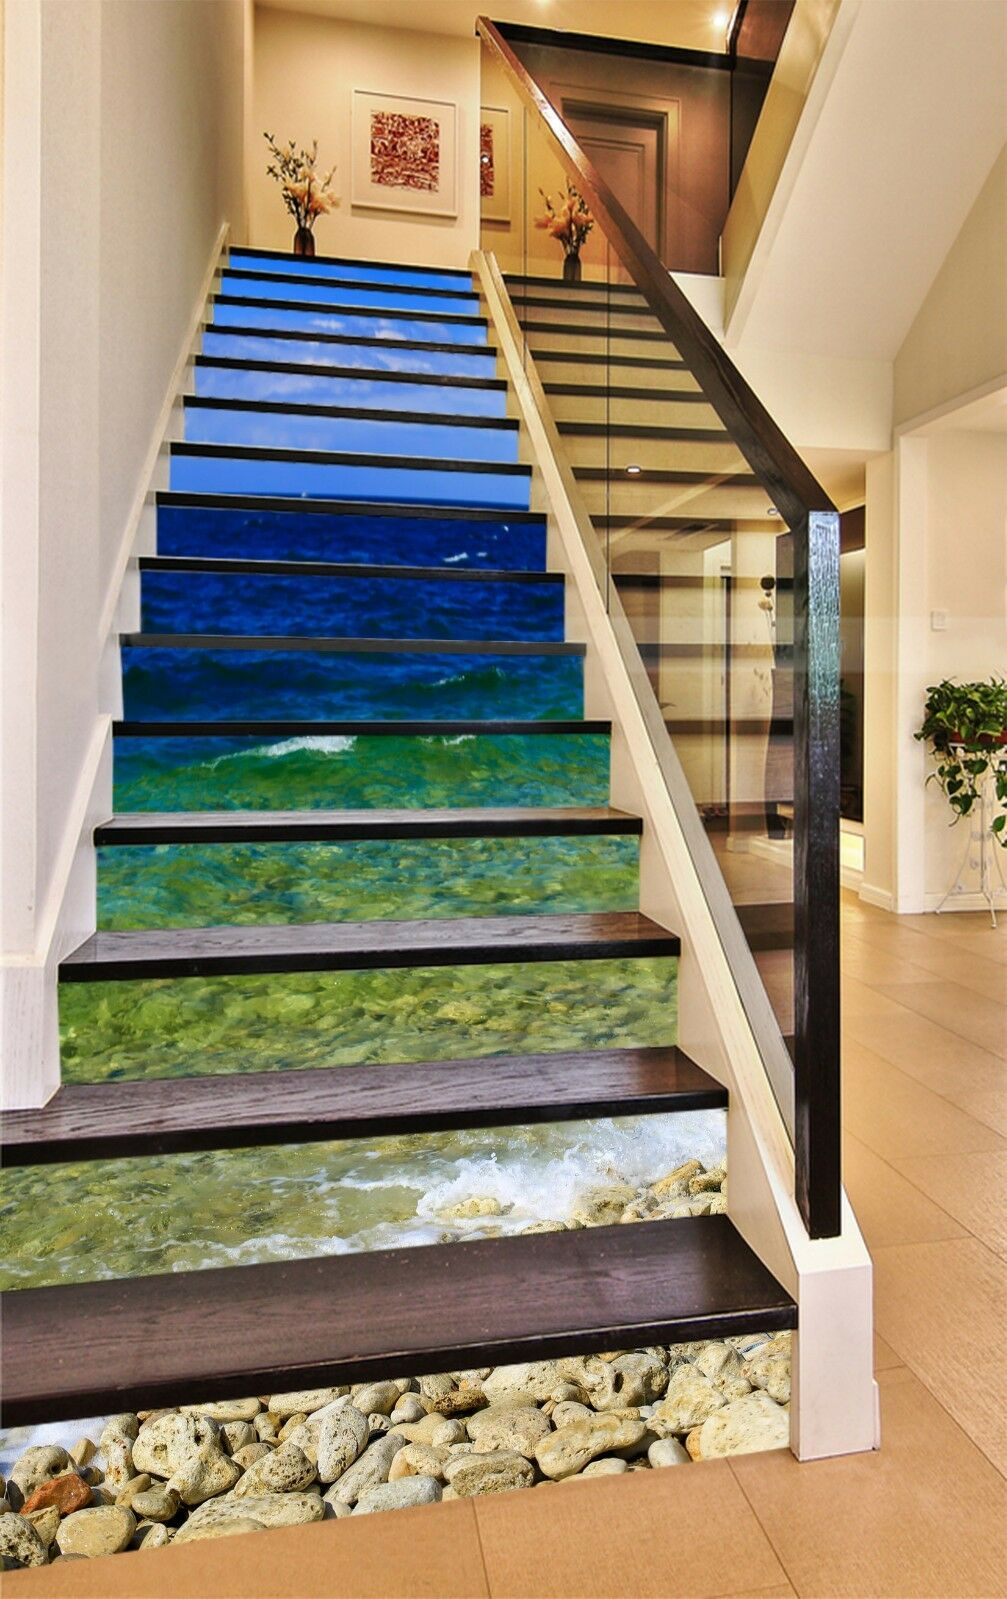 3D Stone Ocean 6 Stair Risers Decoration Photo Mural Vinyl Decal Wallpaper CA